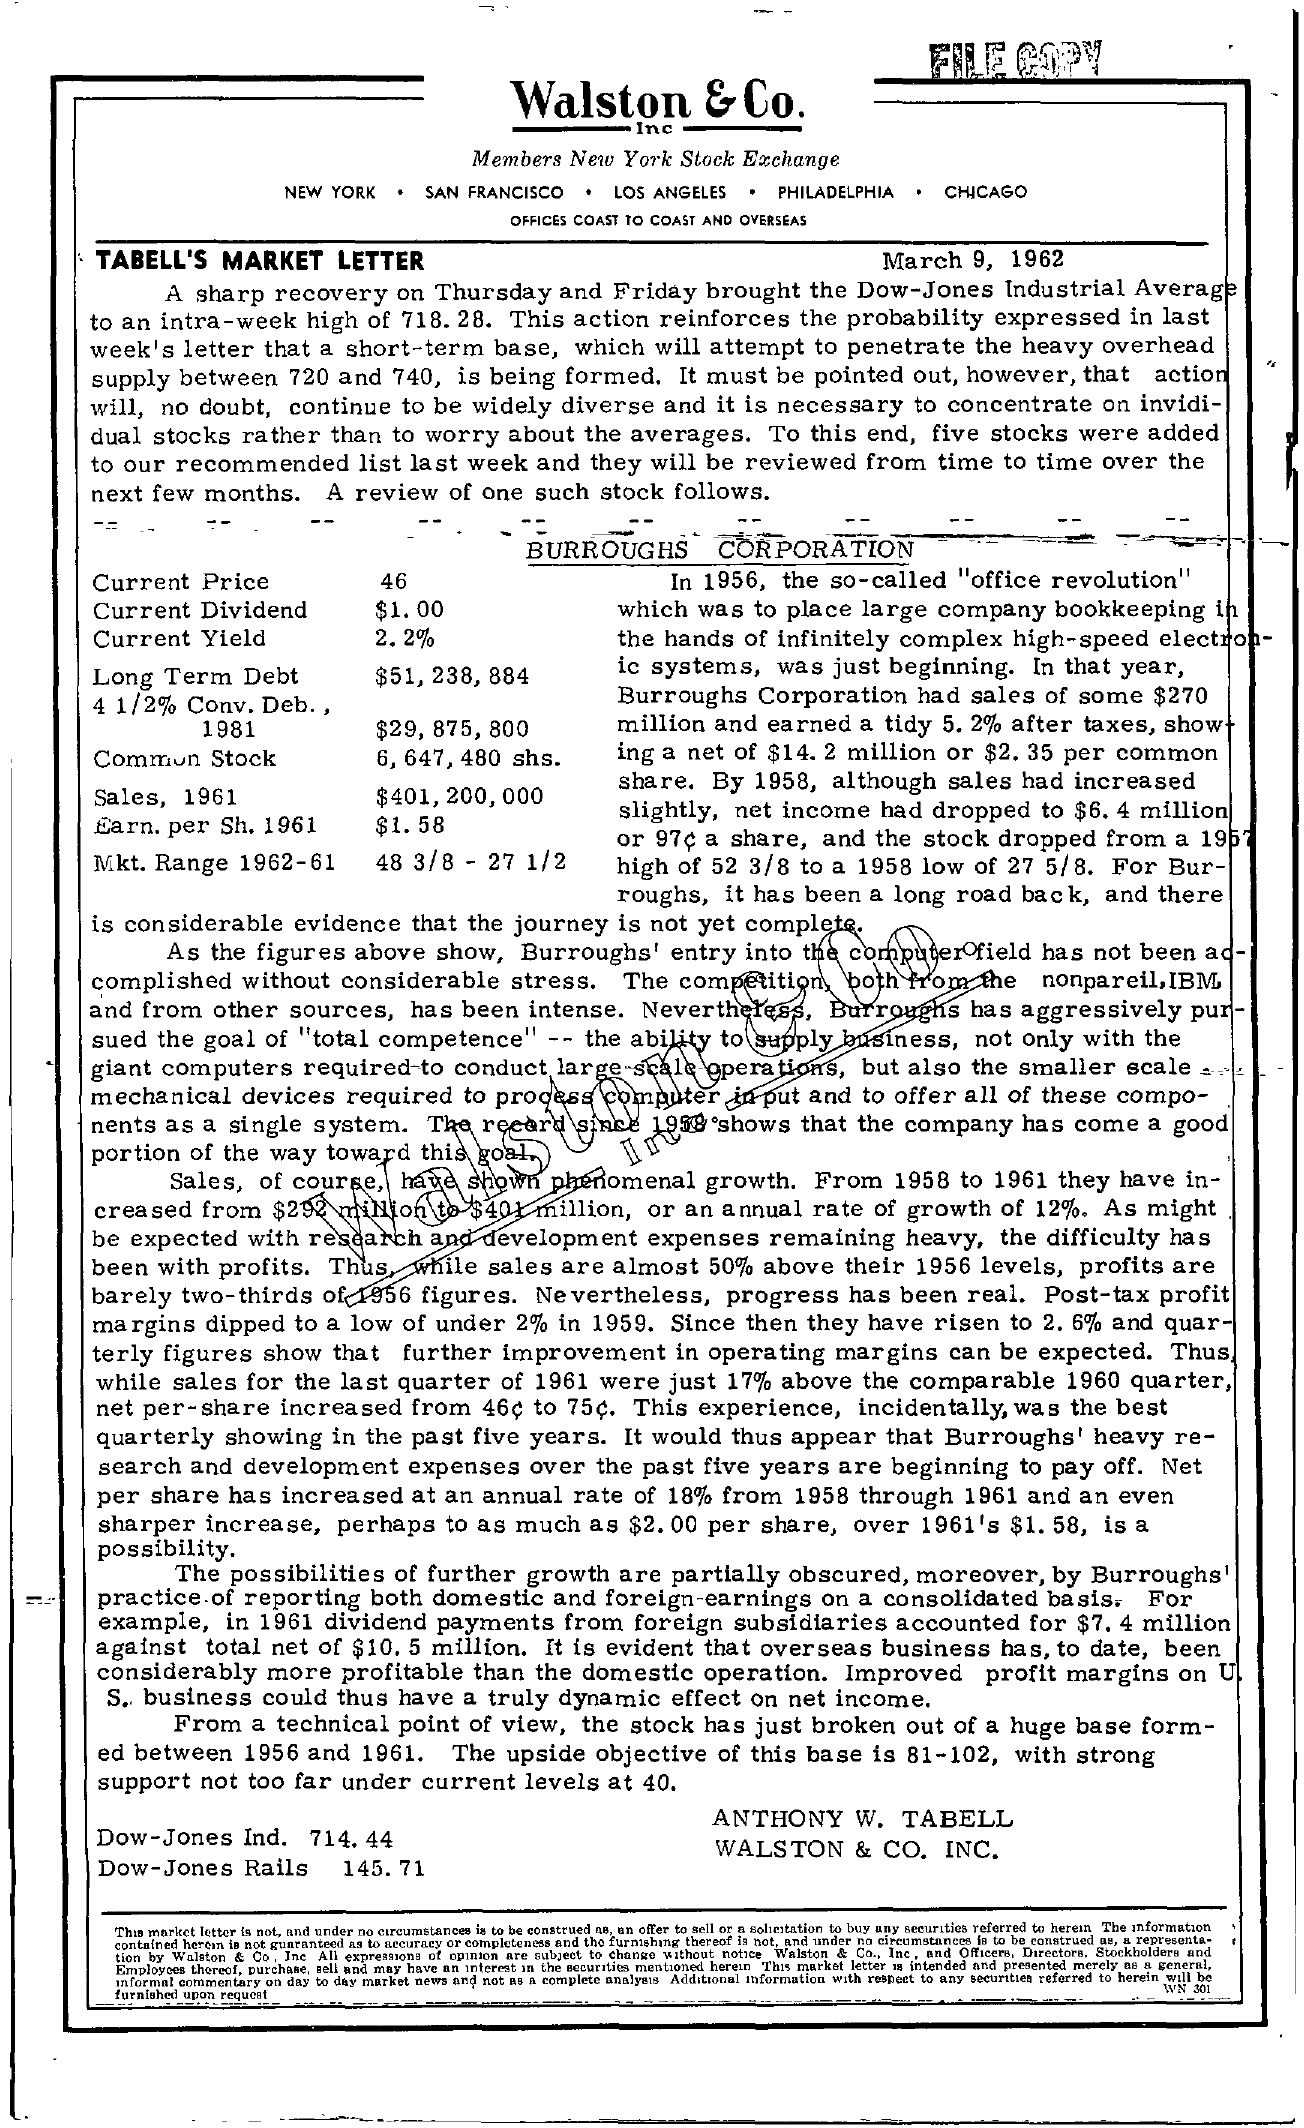 Tabell's Market Letter - March 09, 1962